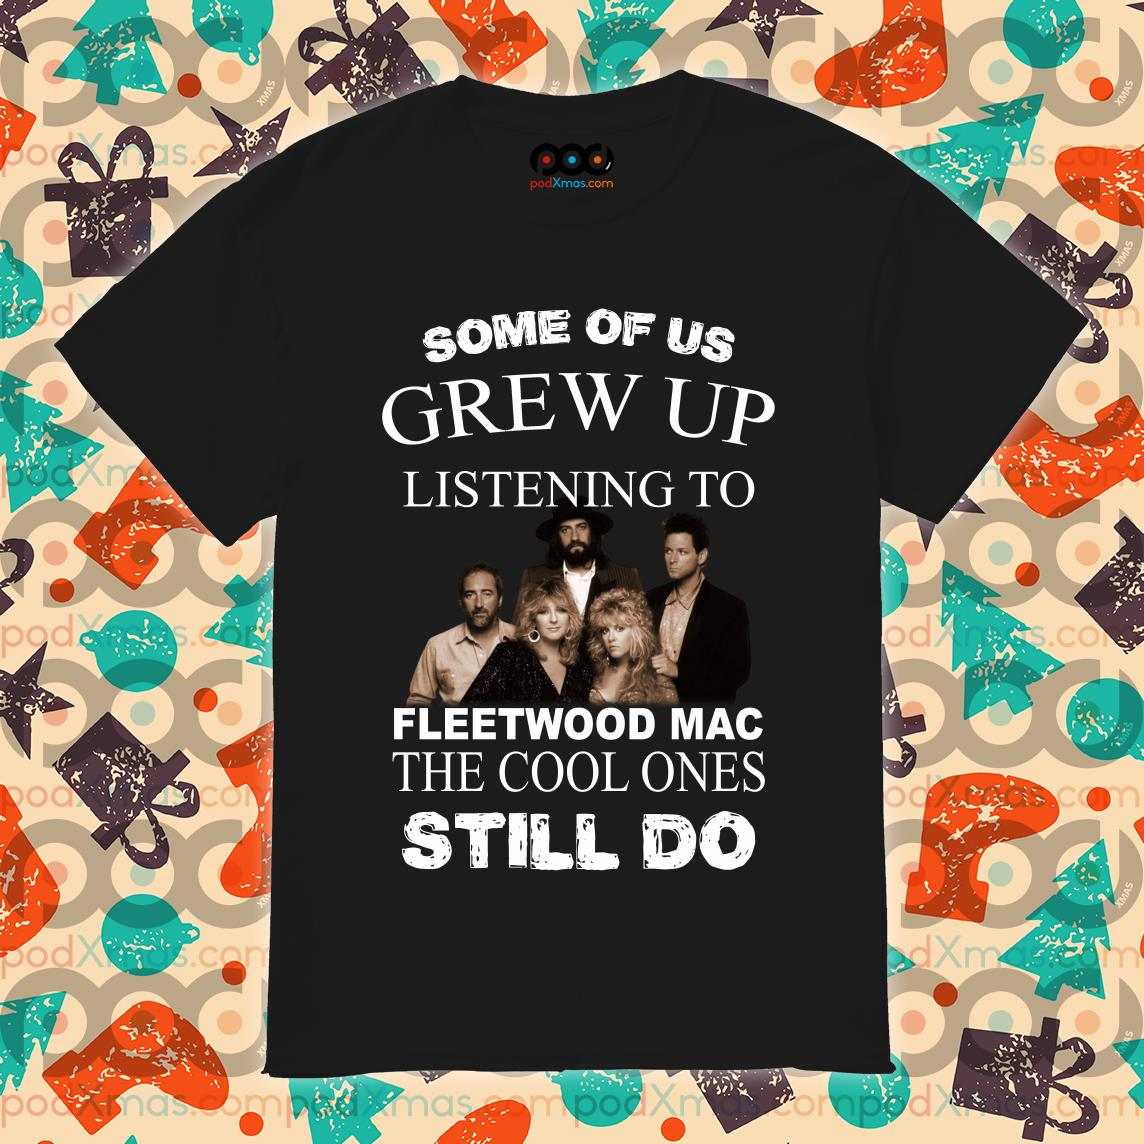 Some of us grew up listening to Fleetwood Mac the cool ones still does shirt